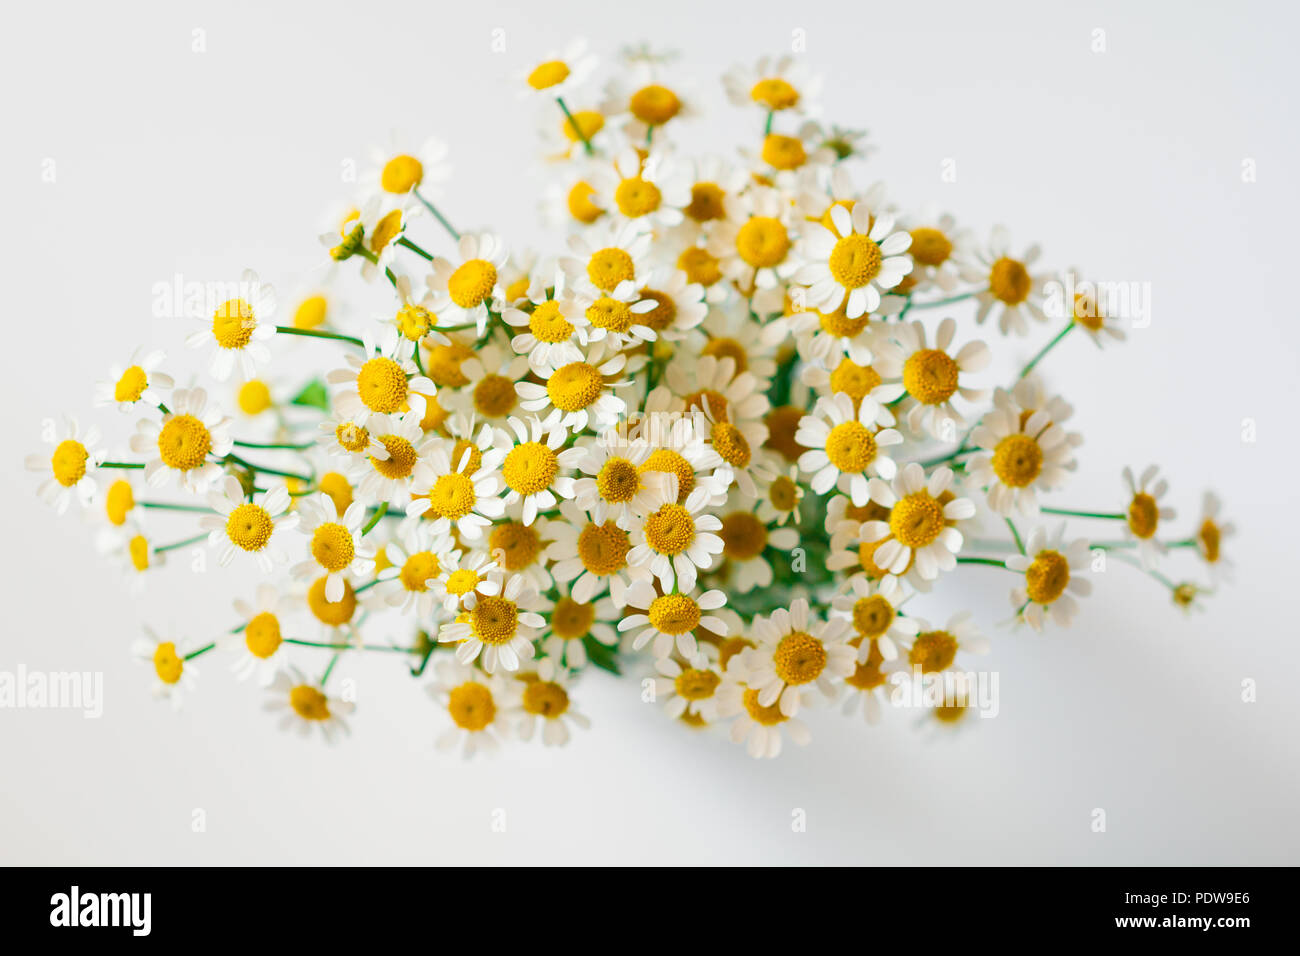 Macro photography of little daisy flowers bouquet over white soft macro photography of little daisy flowers bouquet over white soft focus top view close up composition izmirmasajfo